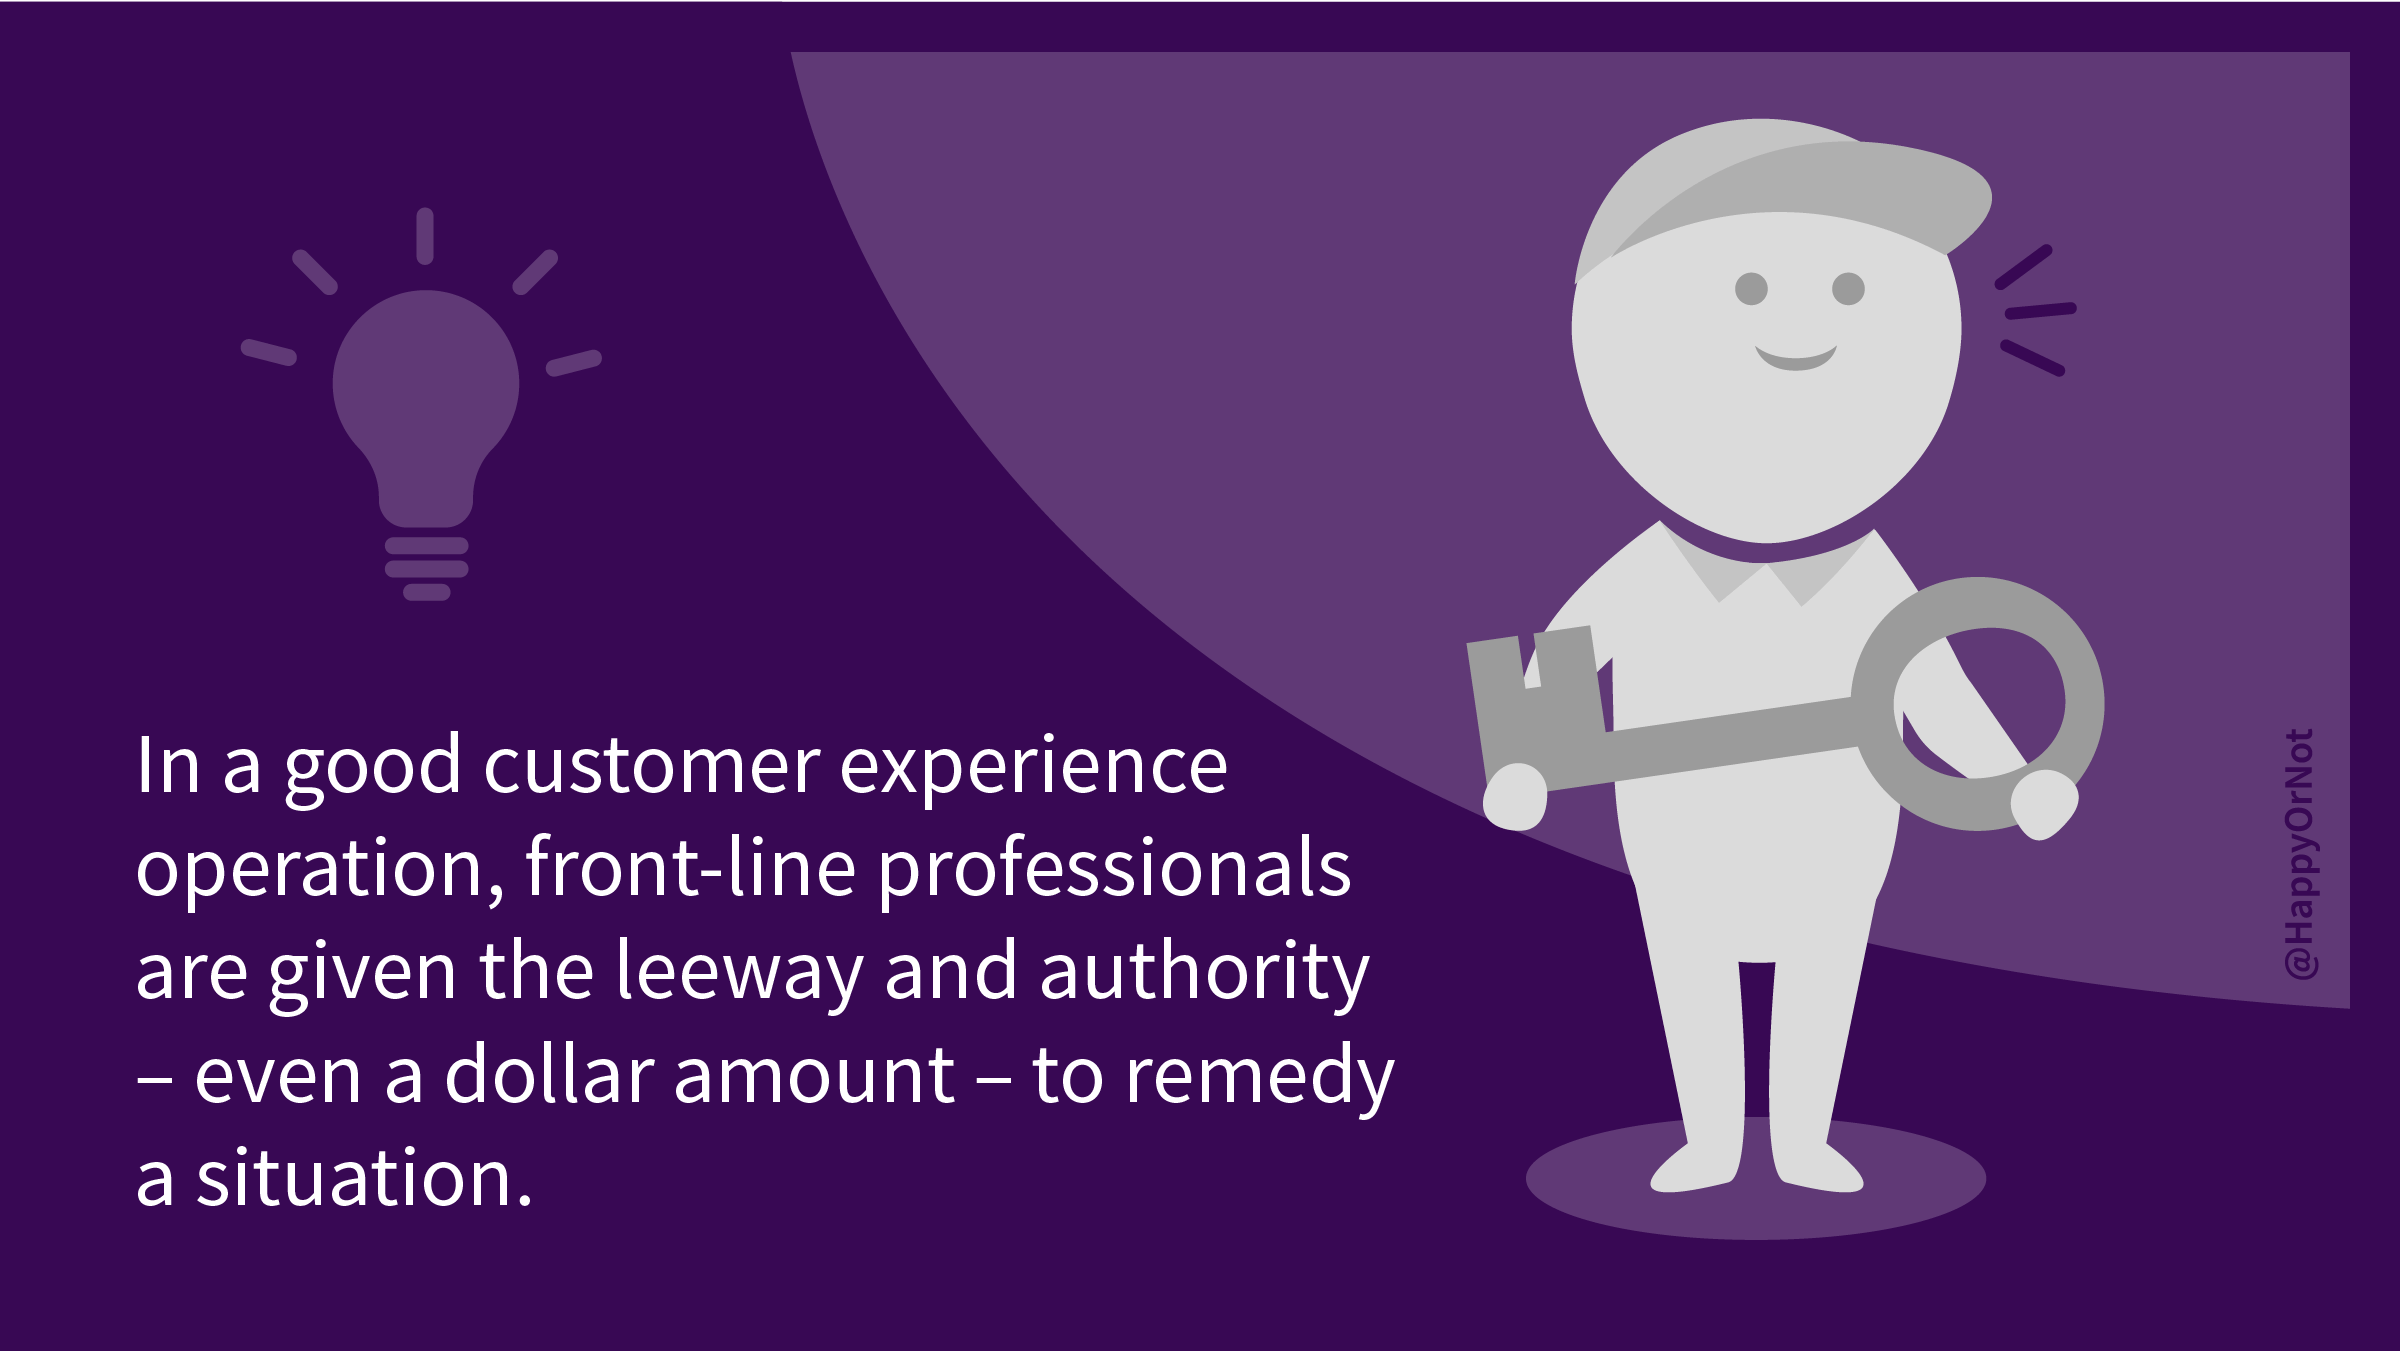 HappyOrNot CX360 Leader Insights: Part 3: In a good customer experience operation, front-line professionals are given the leeway and authority - even a dollar amount - to remedy a situation.